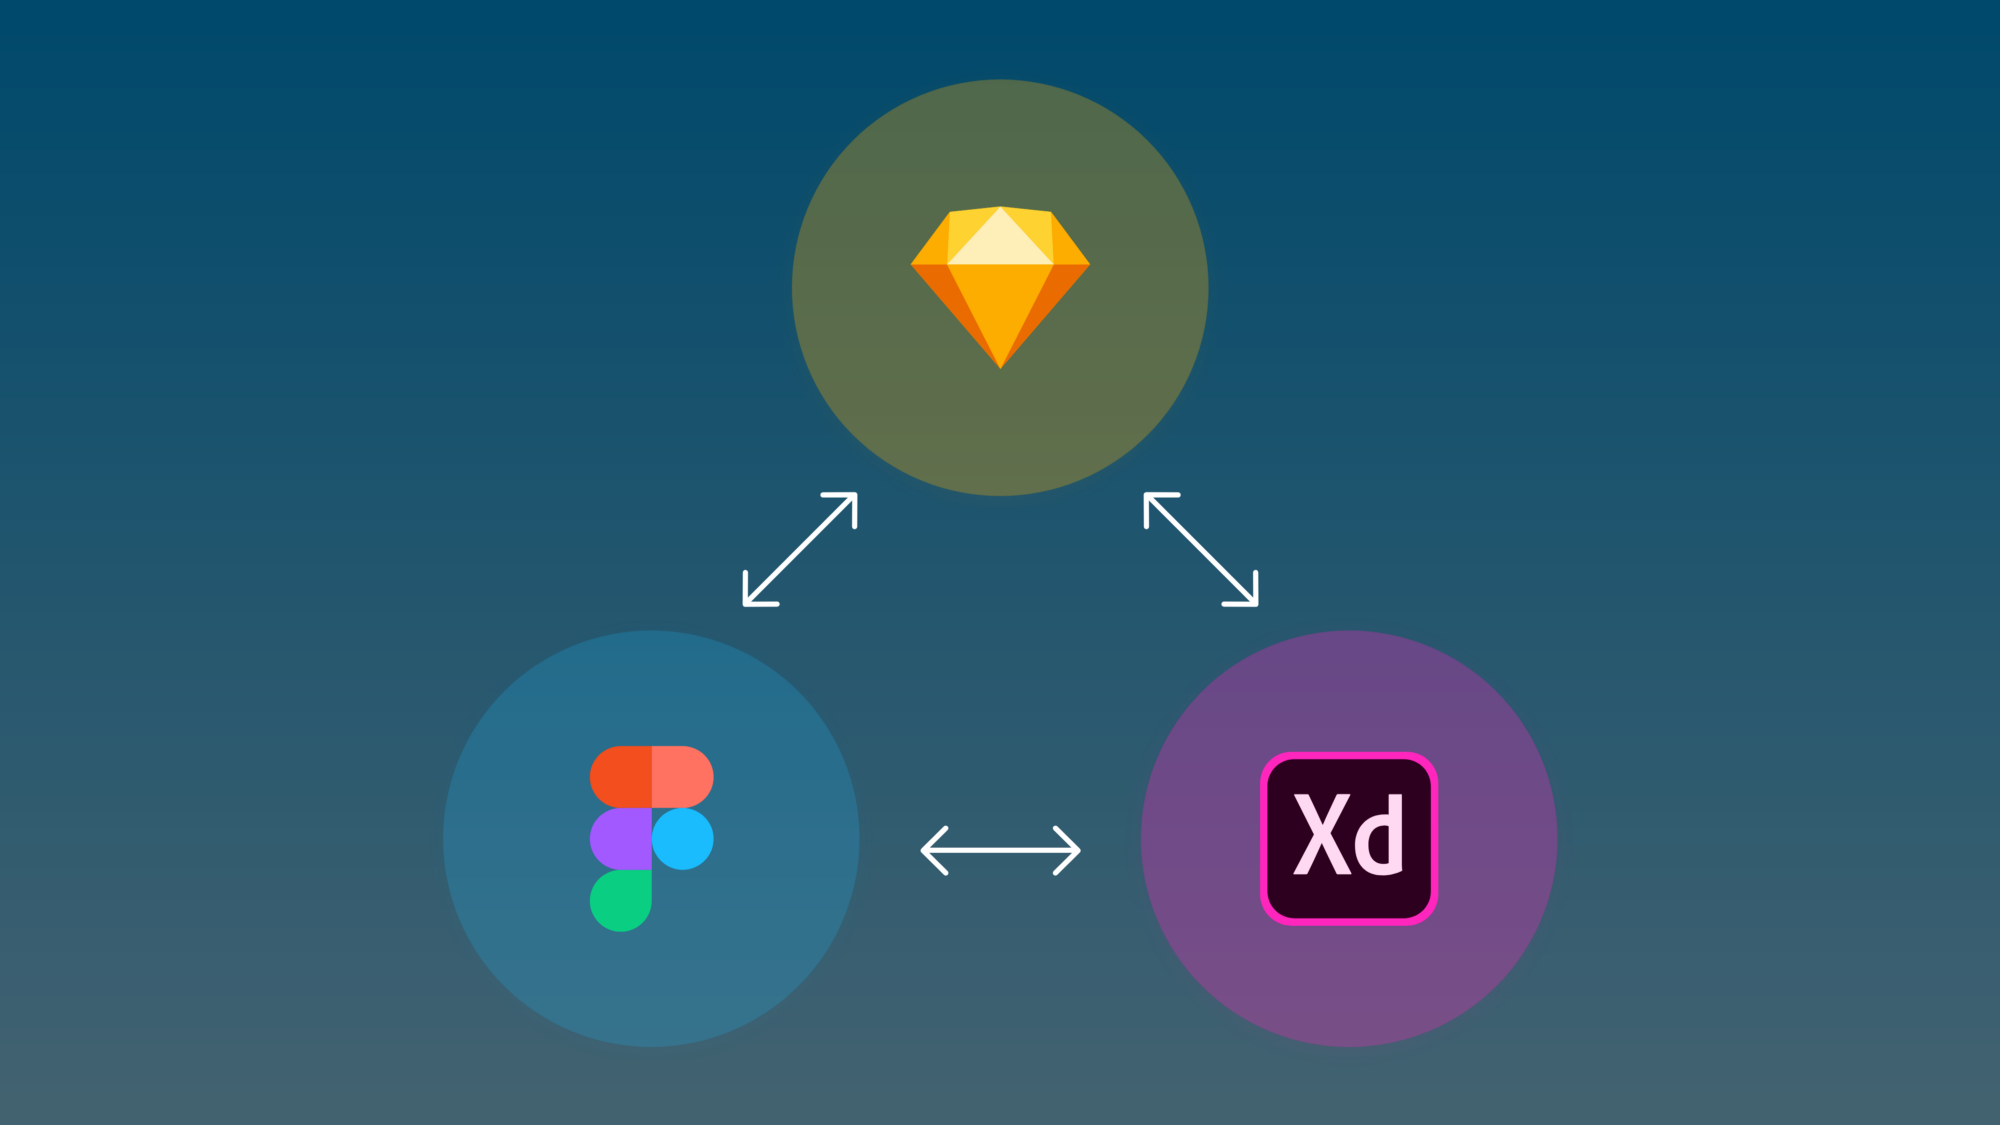 Converting UI design tools. Such as Sketch, Figma and Adobe XD